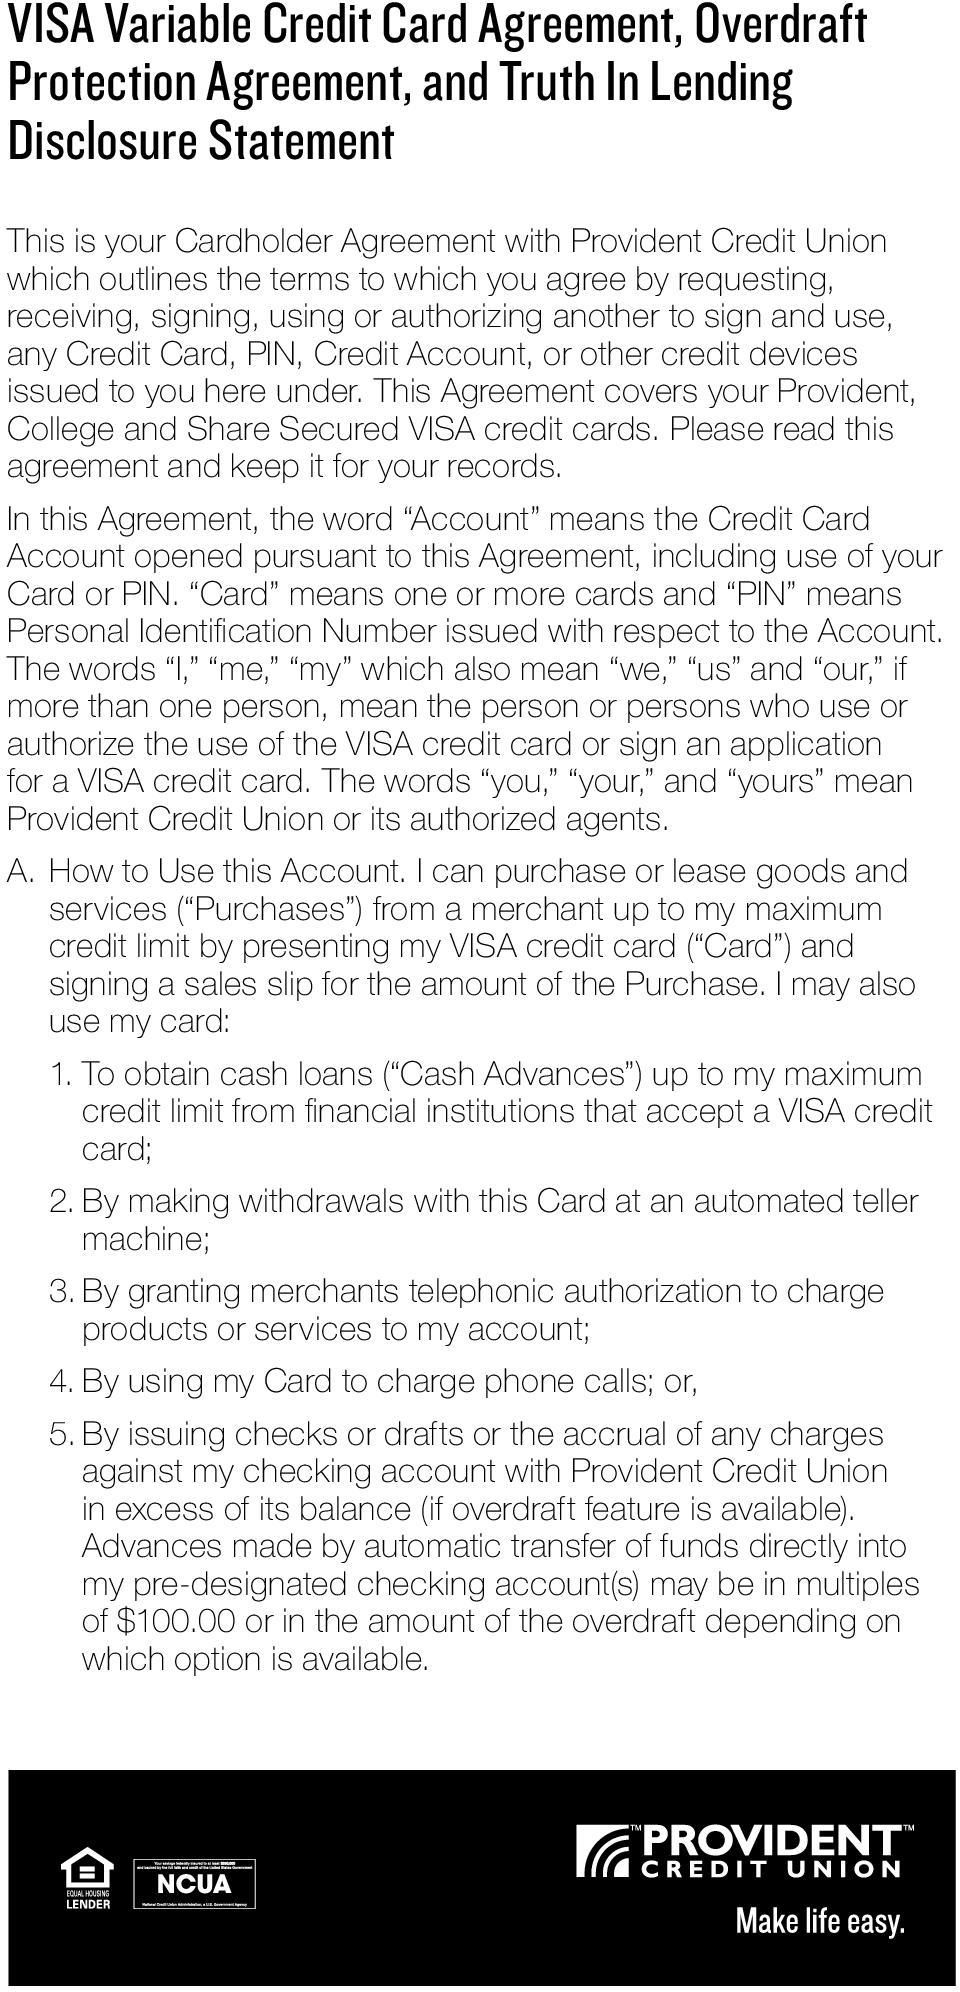 This Agreement covers your Provident, College and Share Secured VISA credit cards. Please read this agreement and keep it for your records.